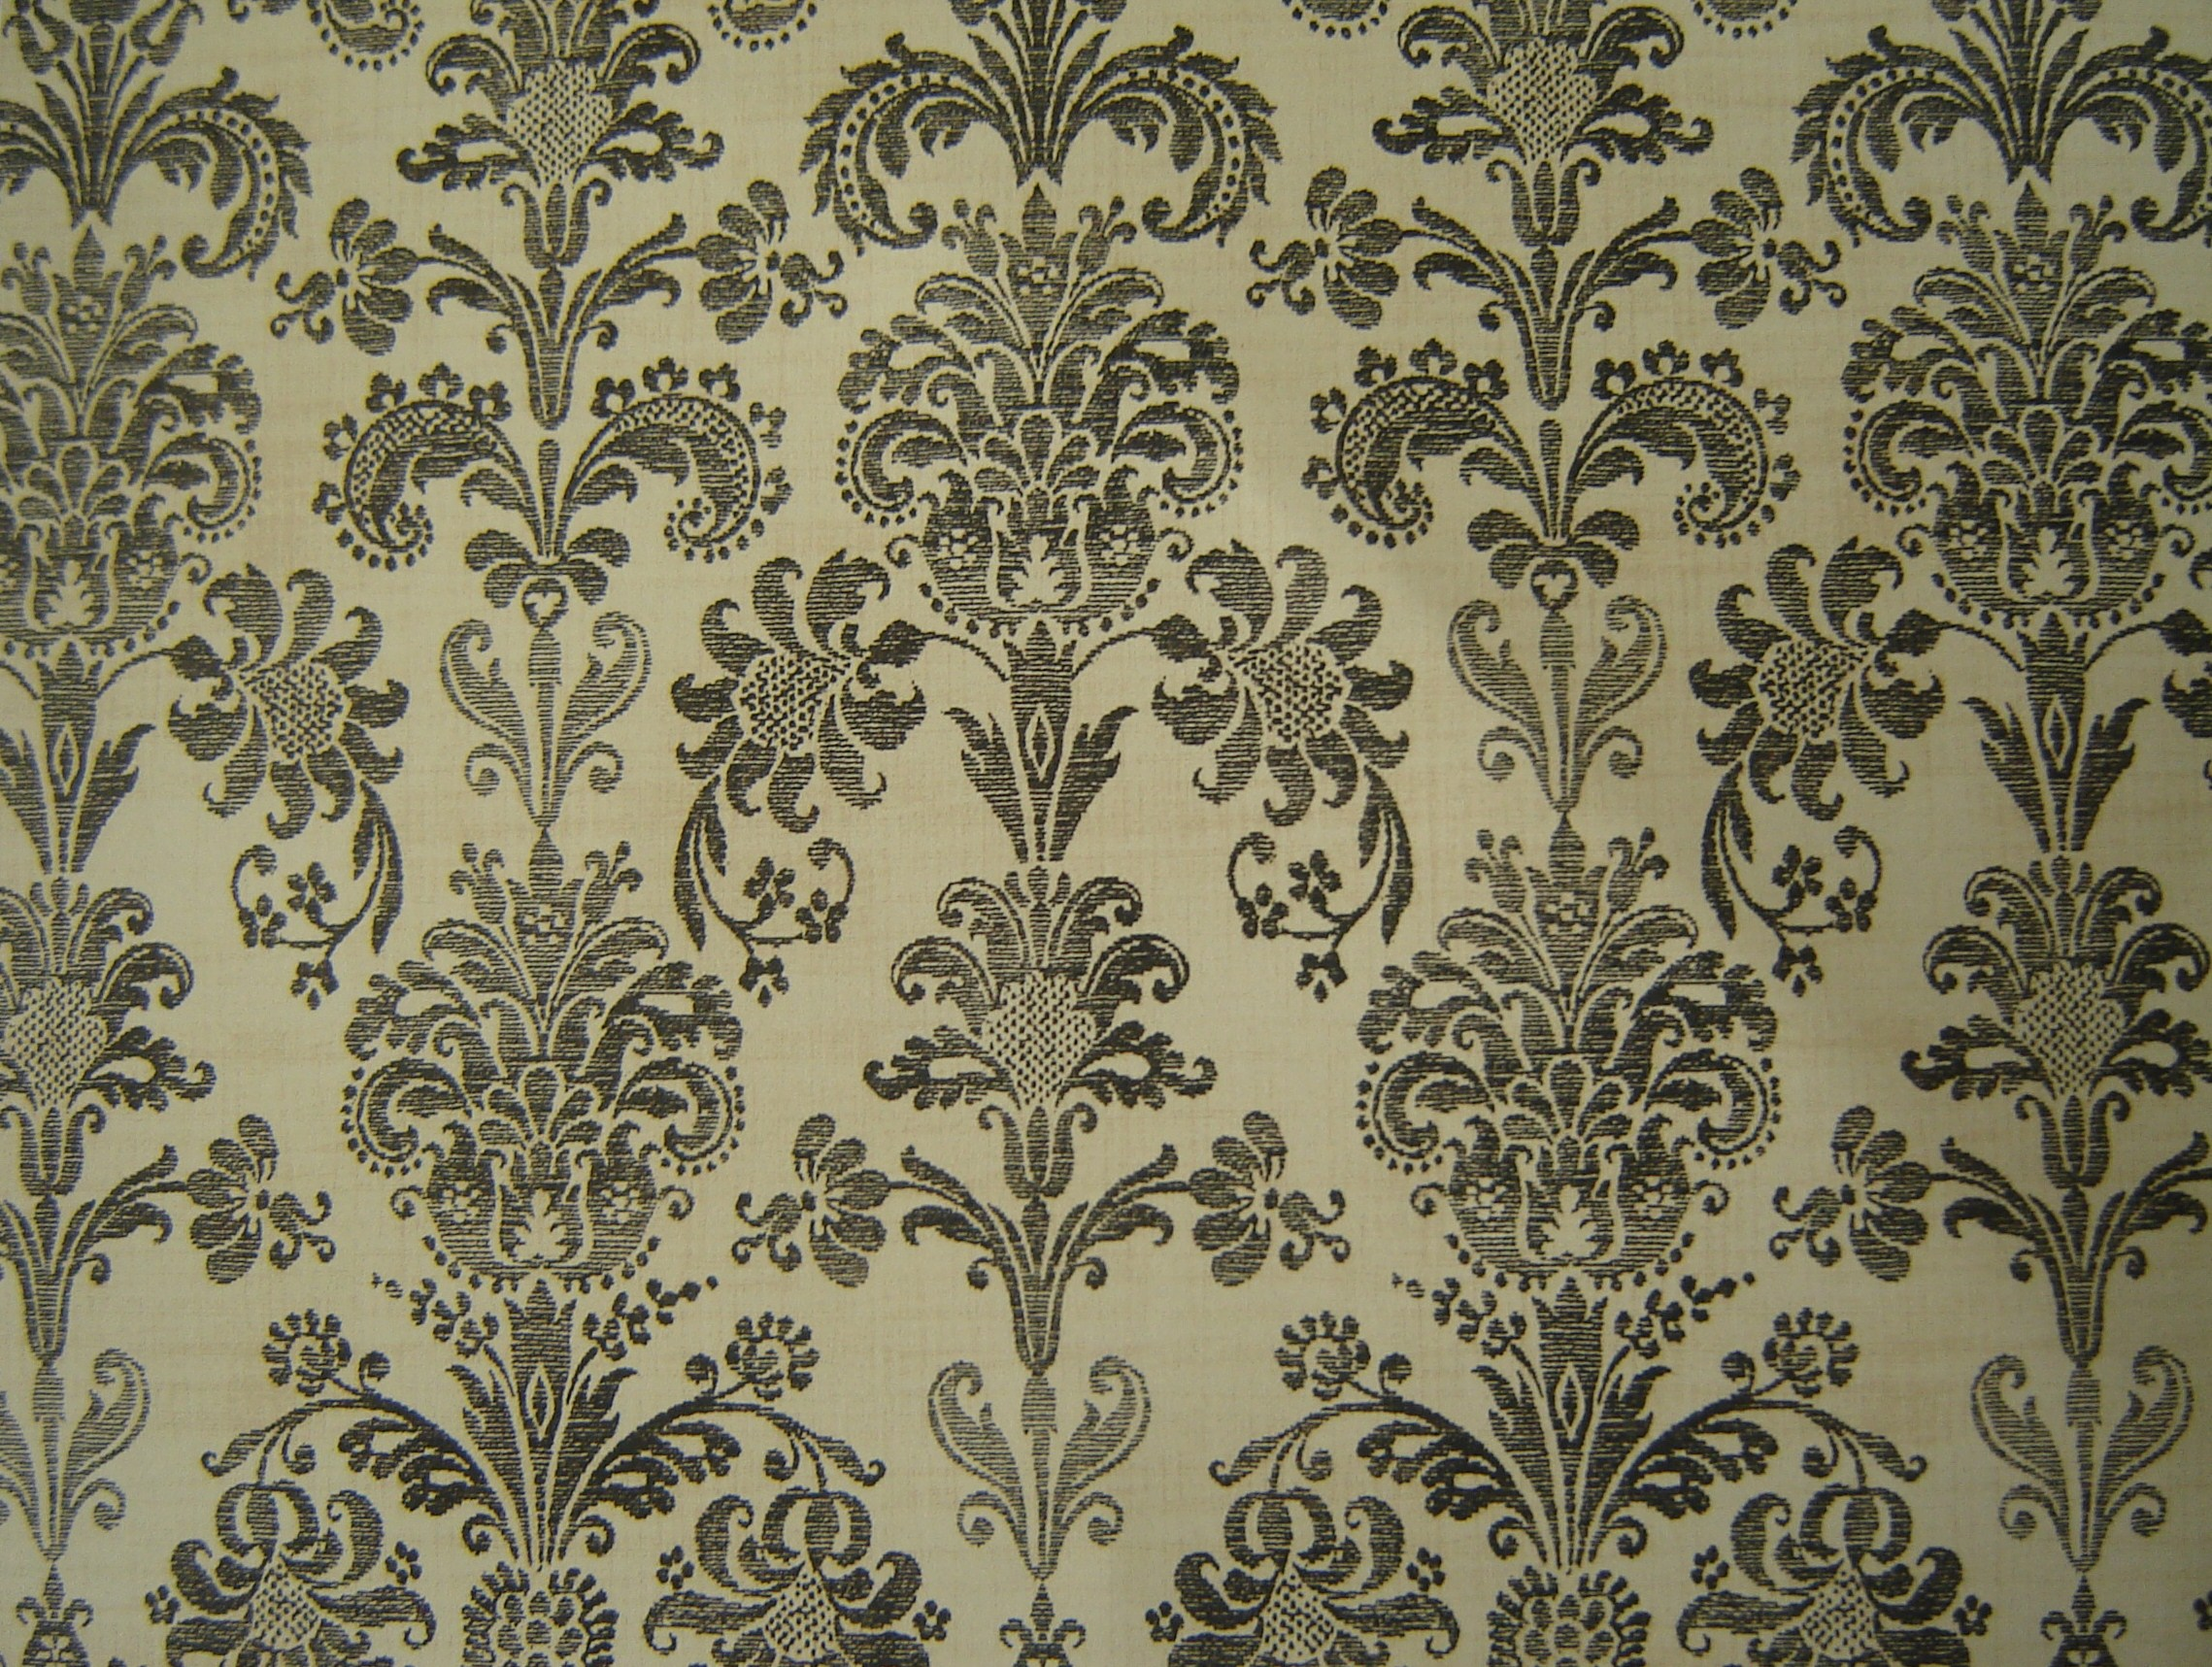 Chossing Modern Wall Paper Pattern to Enrich the Entire House 2278x1717